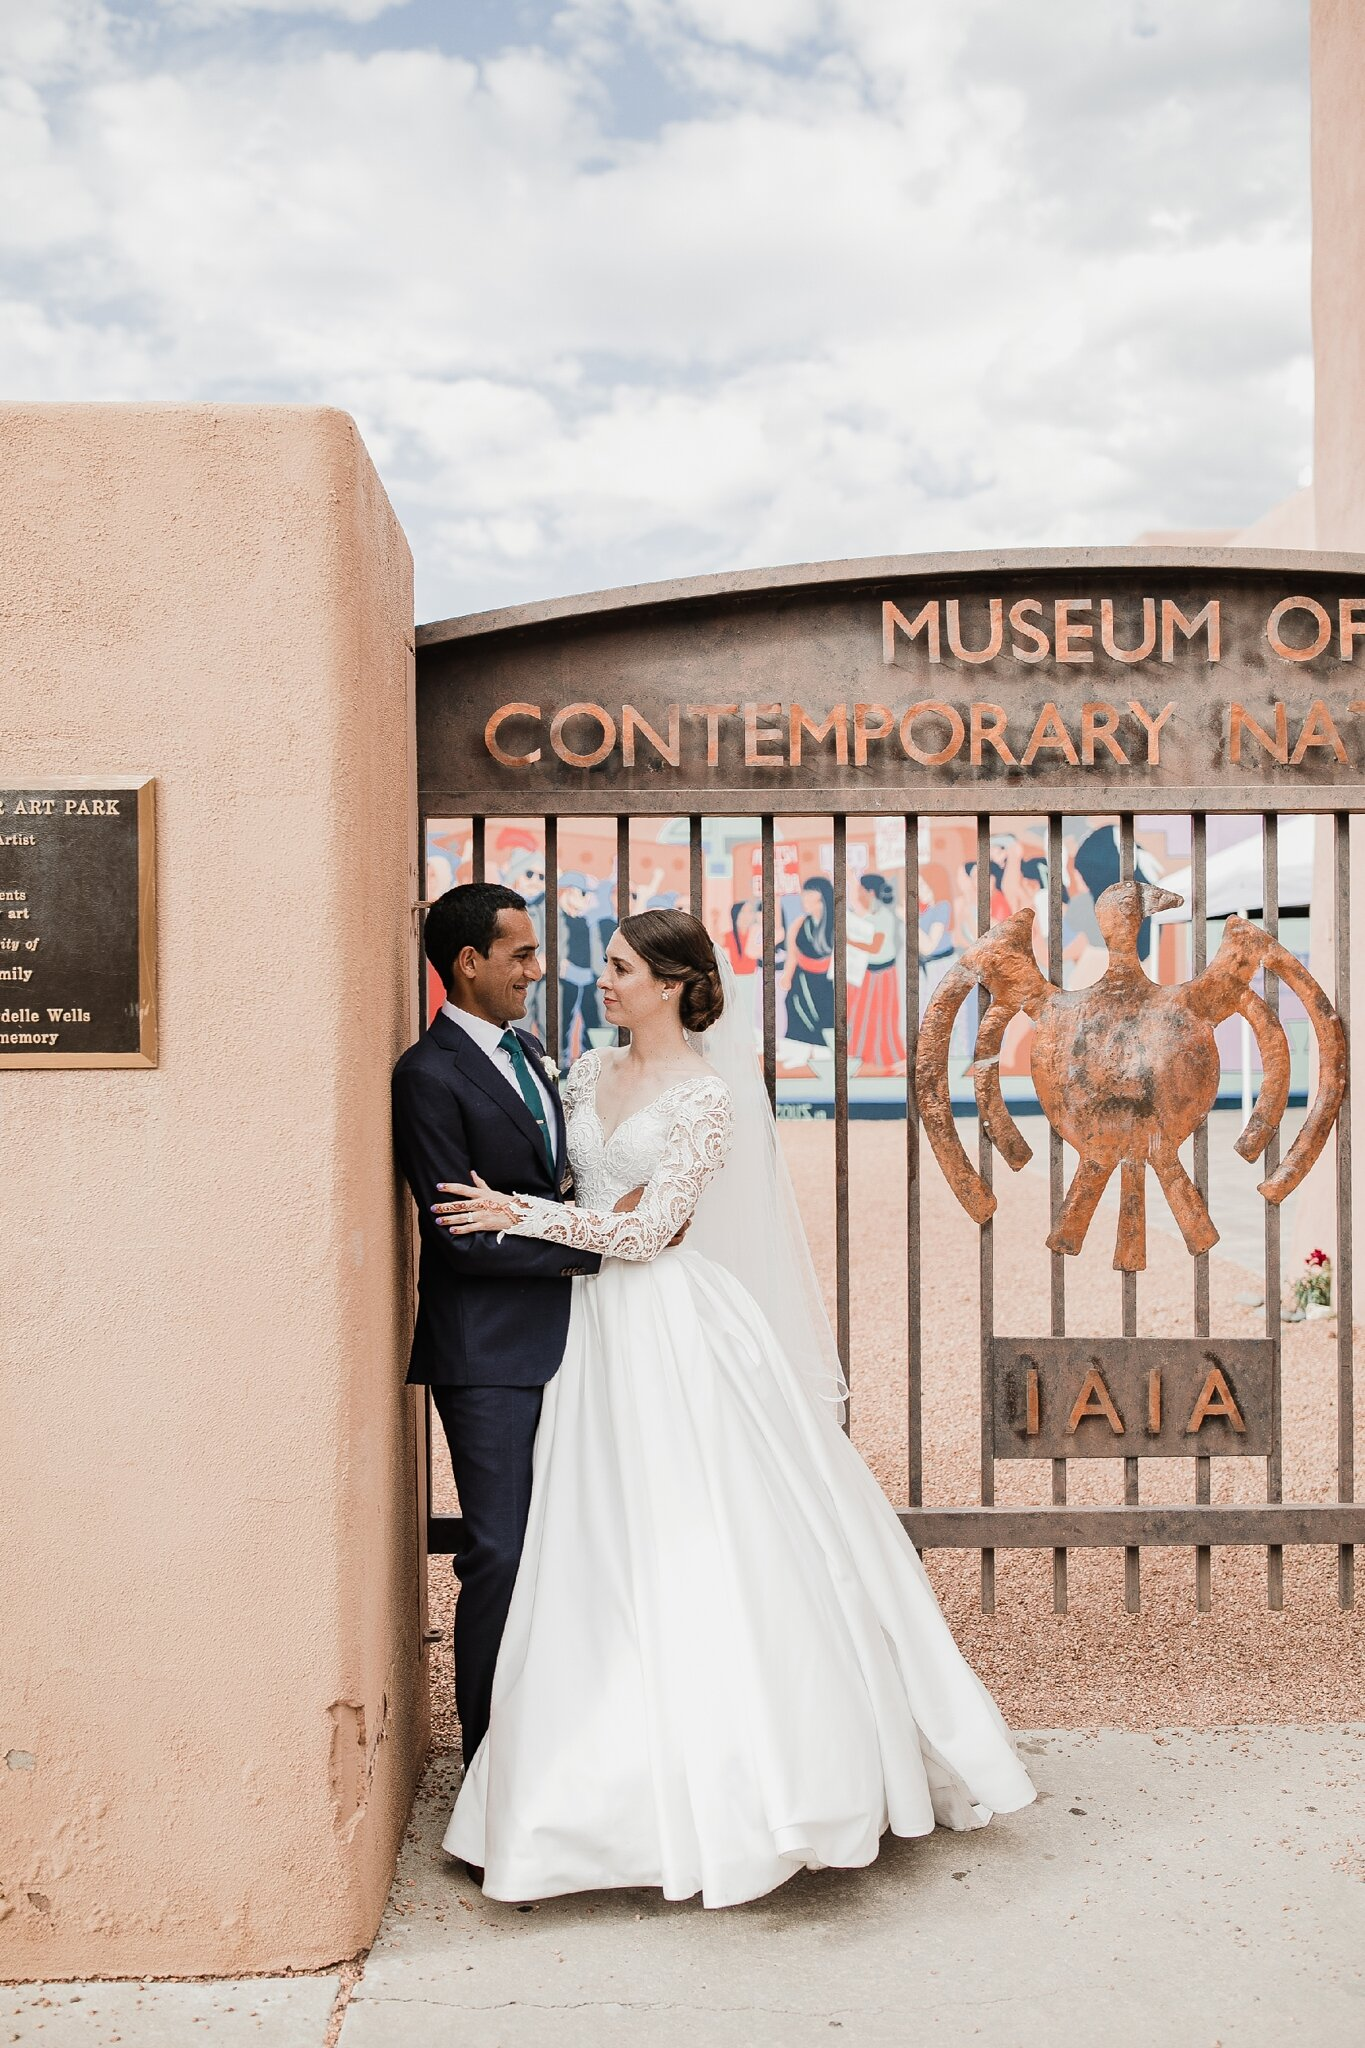 Alicia+lucia+photography+-+albuquerque+wedding+photographer+-+santa+fe+wedding+photography+-+new+mexico+wedding+photographer+-+new+mexico+wedding+-+hindu+wedding+-+catholic+wedding+-+multicultural+wedding+-+santa+fe+wedding_0064.jpg